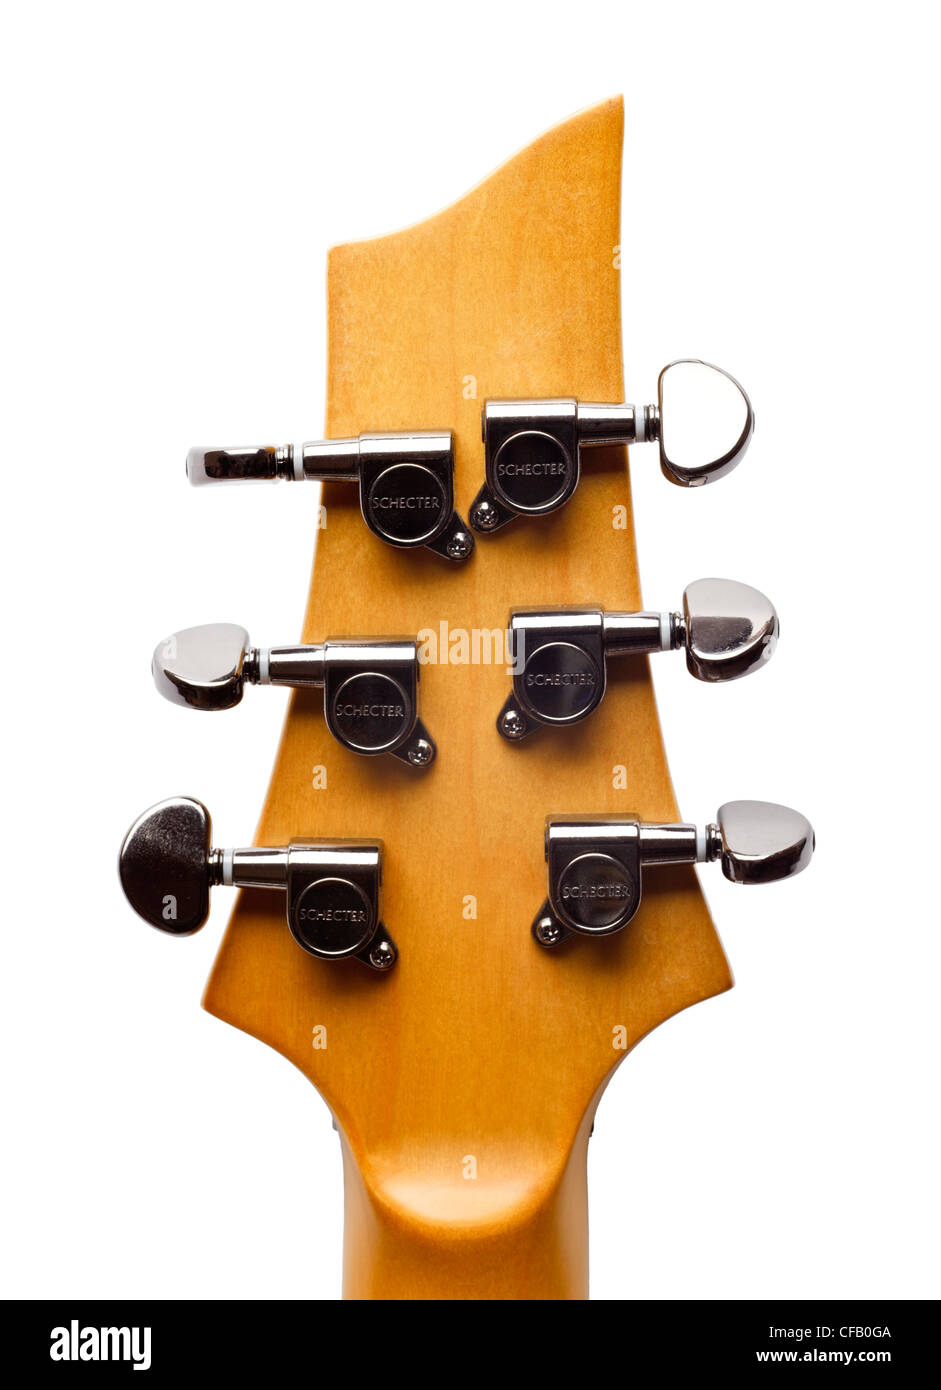 Electric guitar headstock showing string tuners - Stock Image